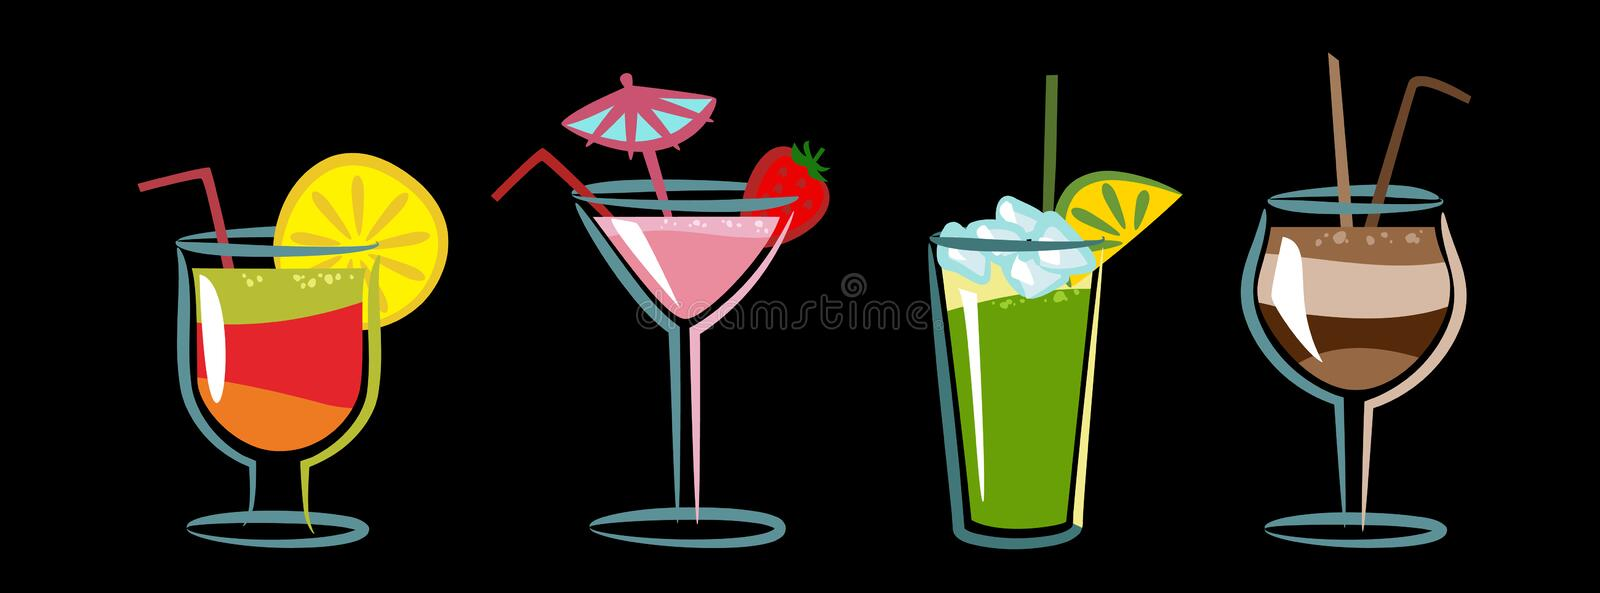 Cocteles libre illustration